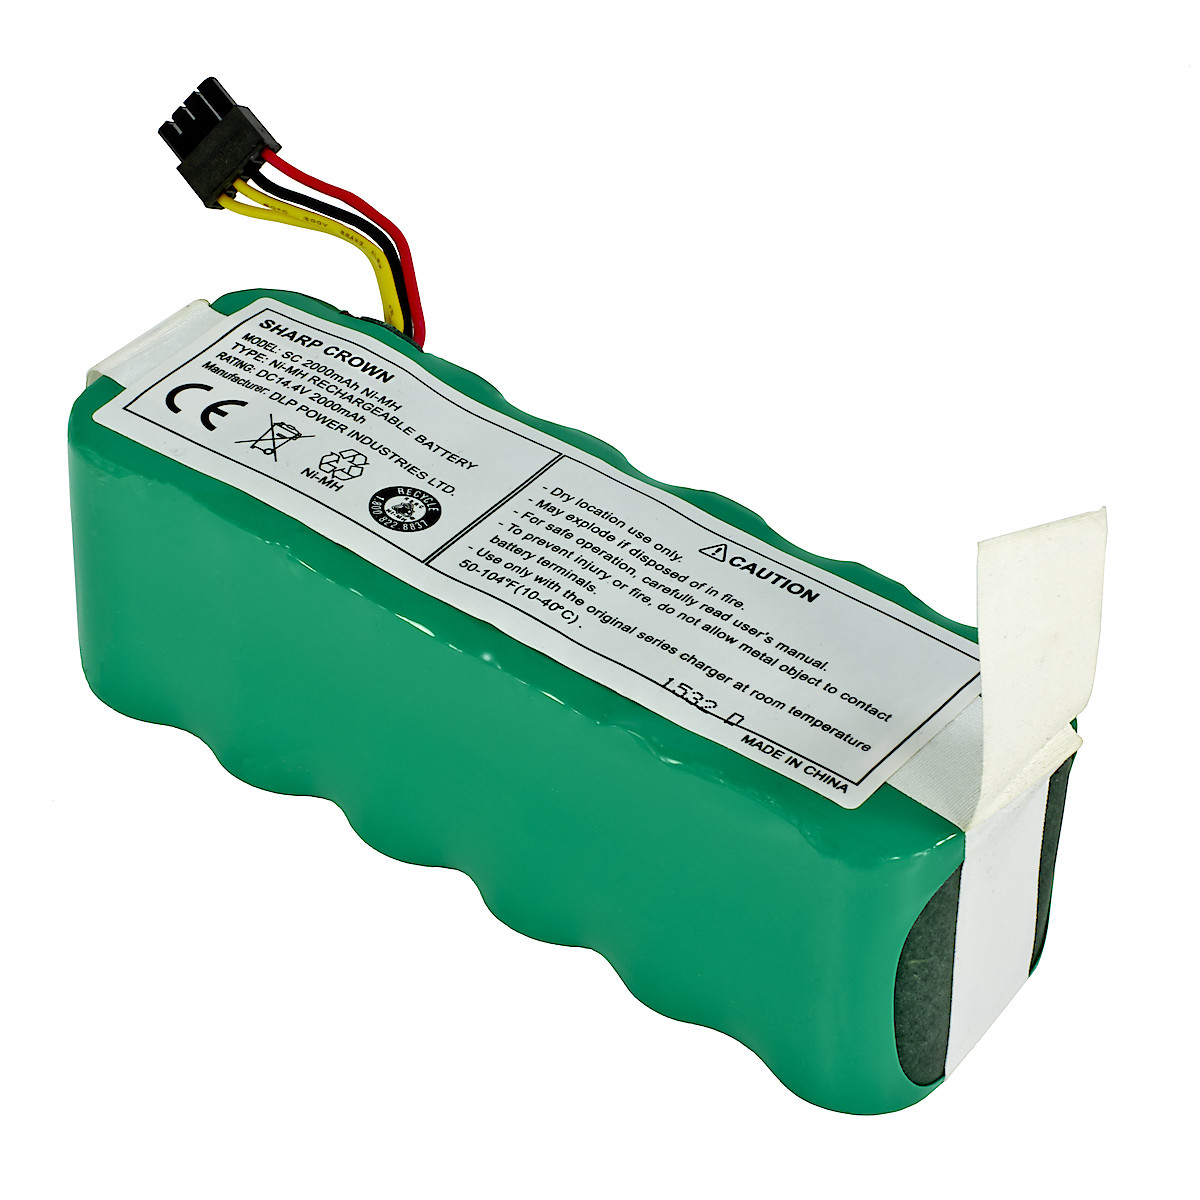 Cleanmate S800/S900 batteri